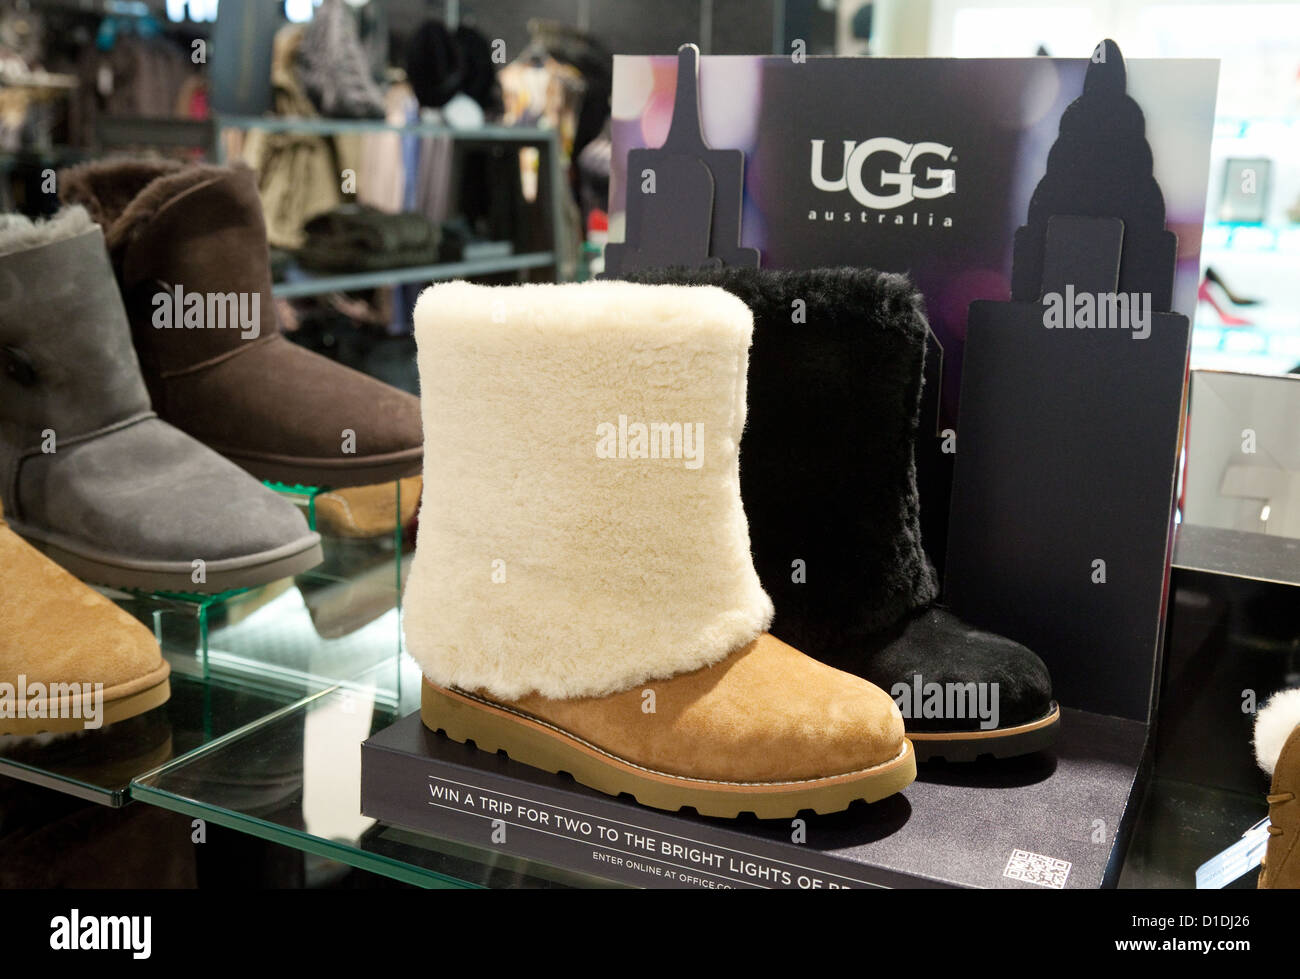 15ecb414cae Ugg boots for sale in a Debenhams store selling Uggs, MK centre ...